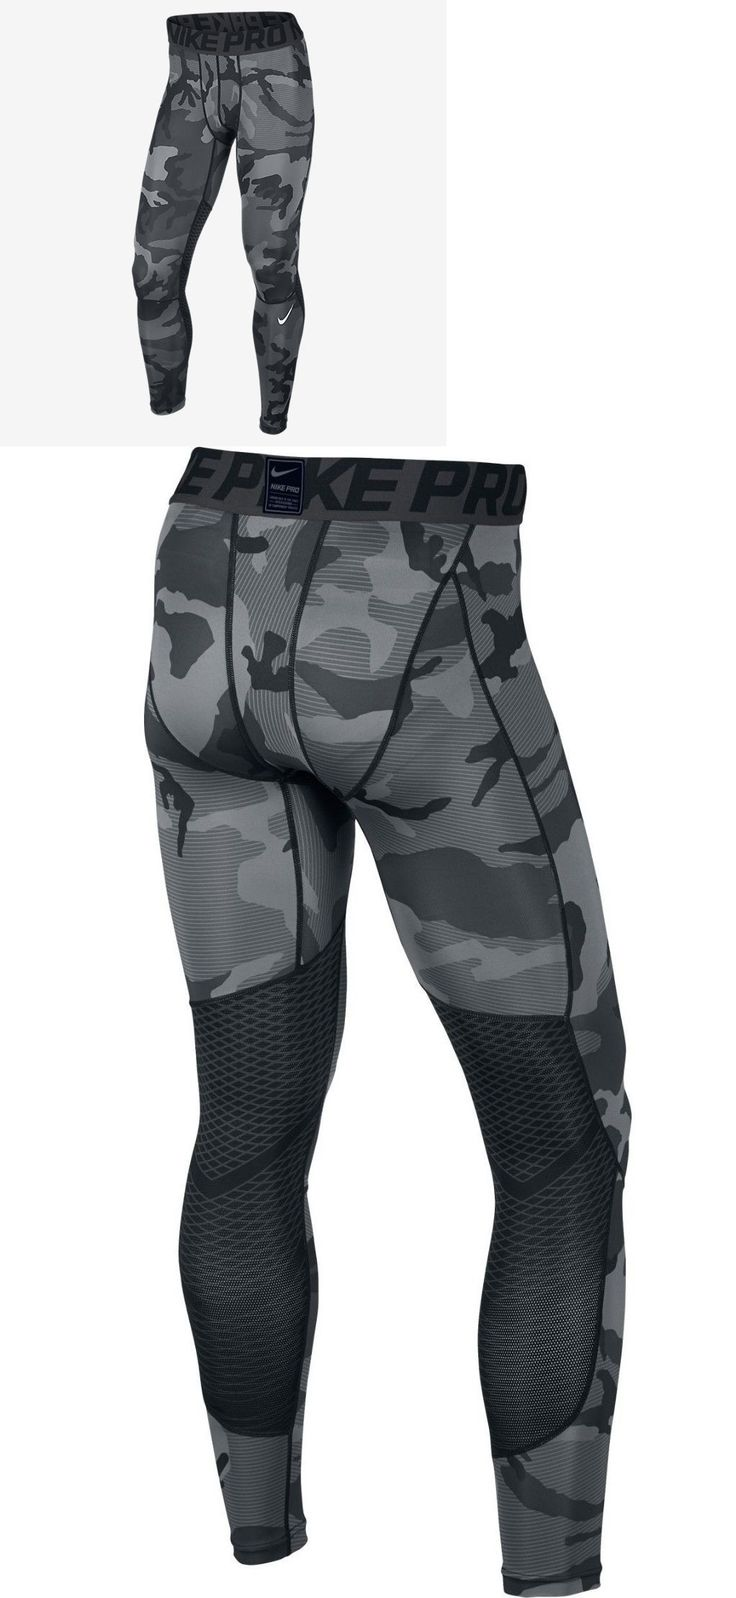 Compression and Base Layers 179825: Nike Pro Hypercool Allover Print Mens Tights 801227-010 Size Xl Msrp $60 -> BUY IT NOW ONLY: $44.99 on eBay!